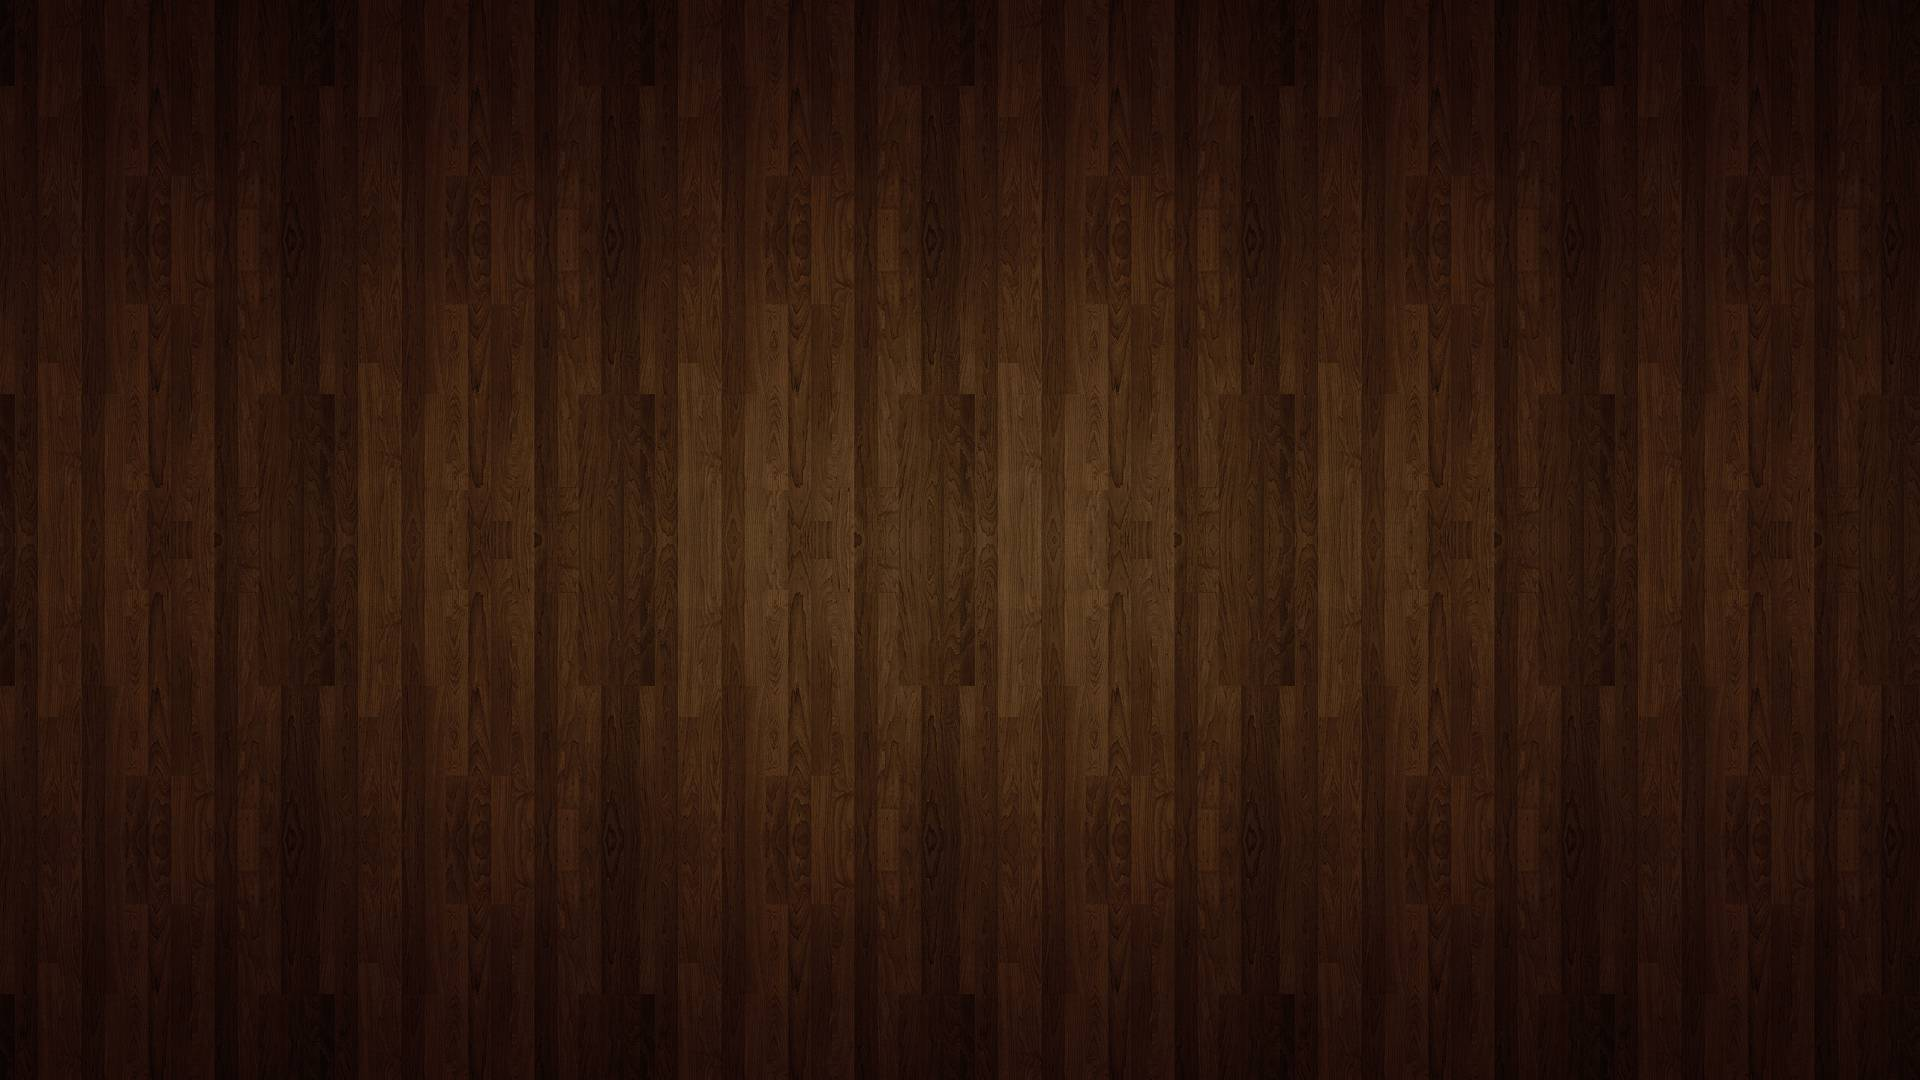 Wood Grain Wallpaper